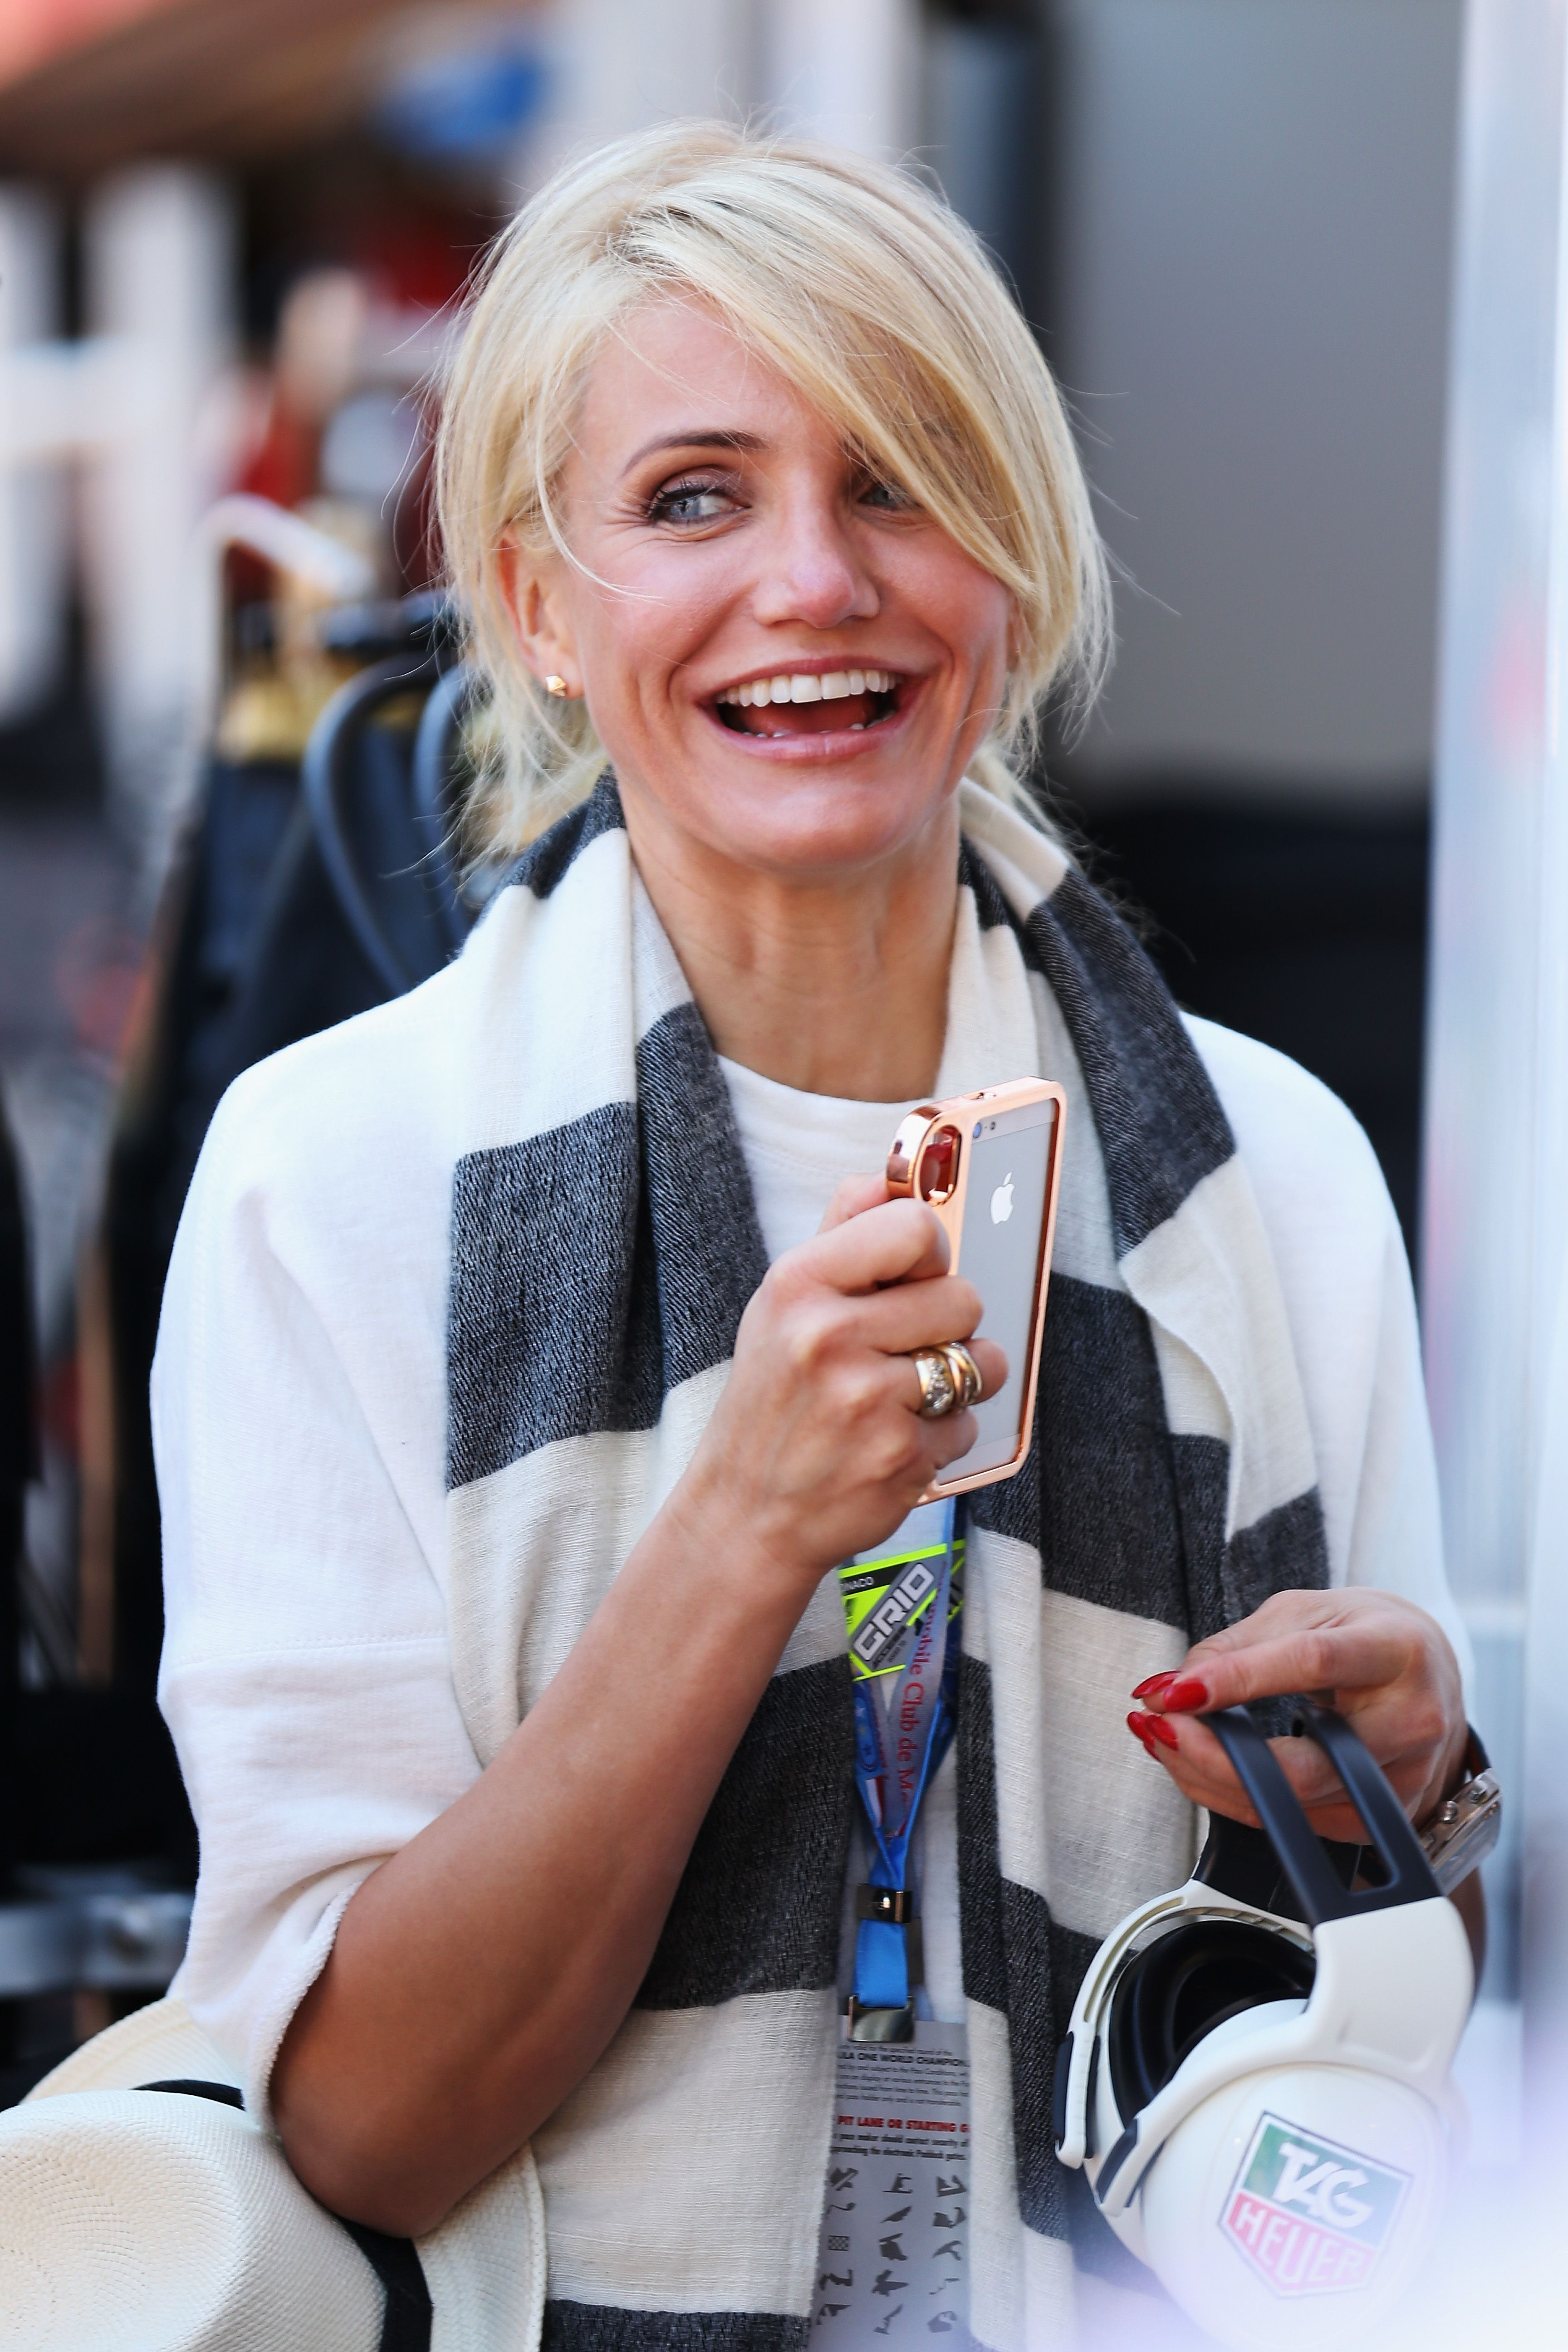 From 'The Mask' to 'Charlie's Angels' Cameron Diaz shines (PHOTOS ...